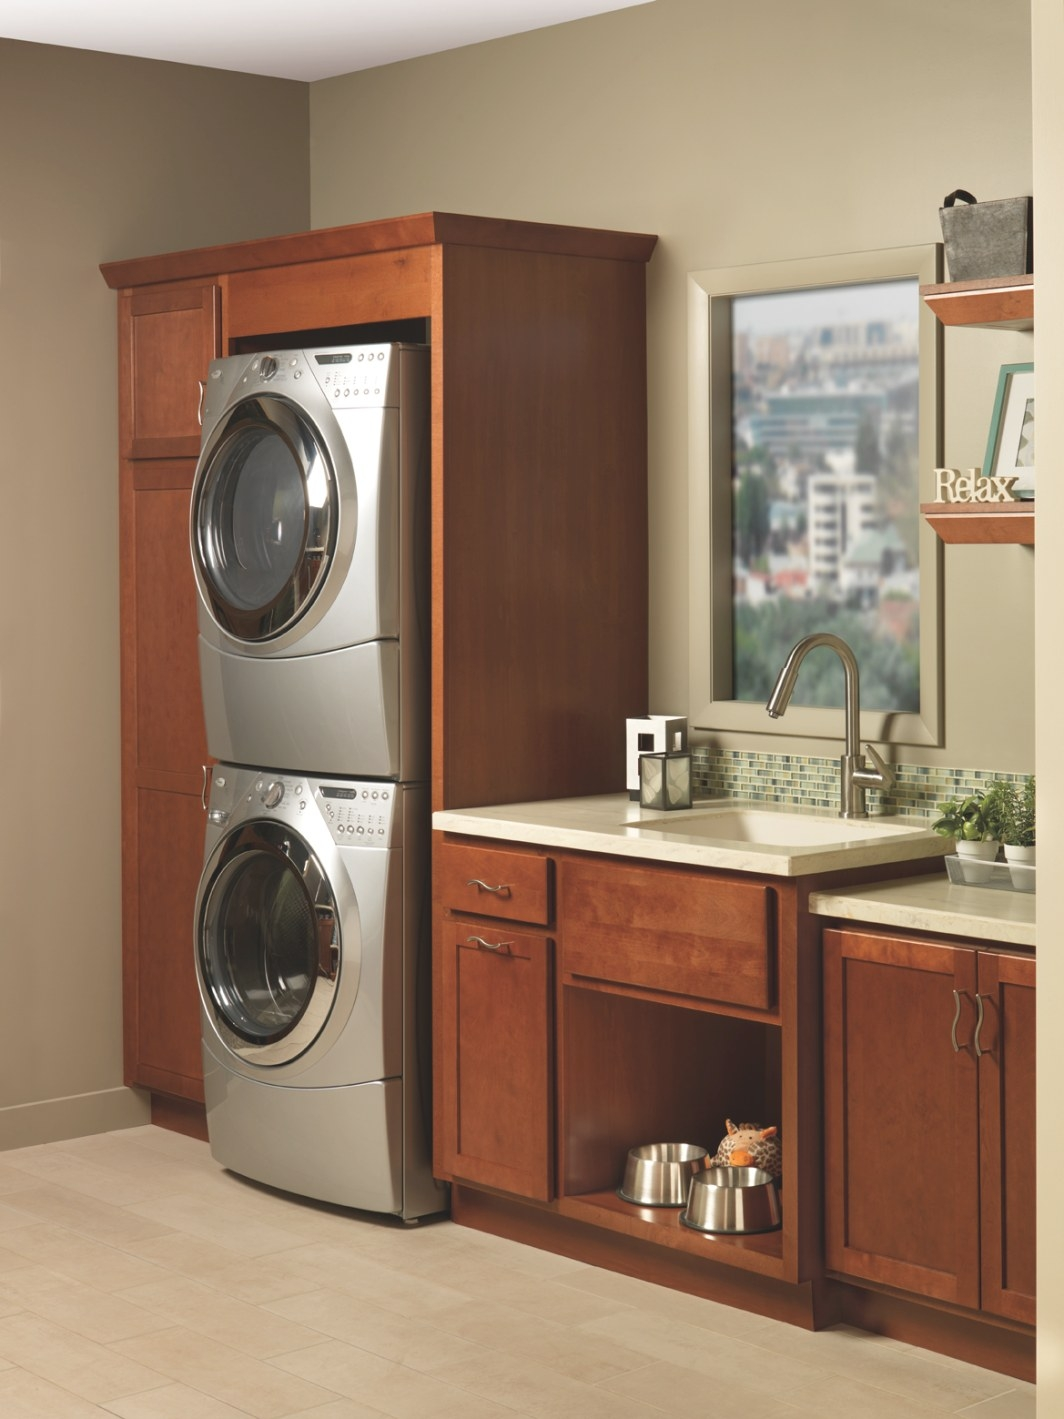 Kitchen Cabinets Company | Great American Kitchen & Bath within American Kitchen And Bath